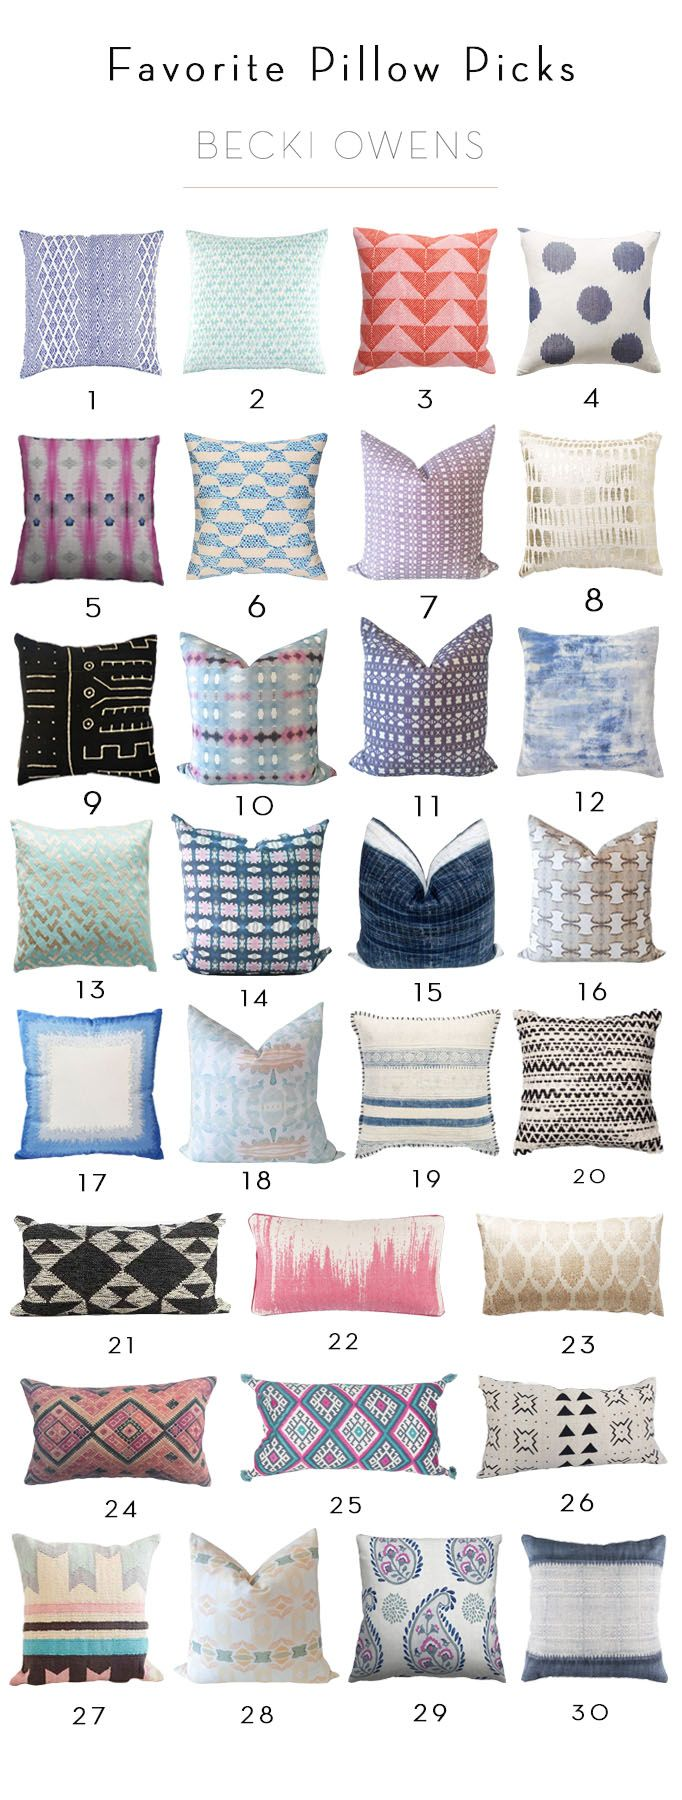 Today I'm sharing a tip on how to pick pretty throw pillows. One reason I love to work with a neutral palette is I can have a lot of fun with colorful, unique textiles.